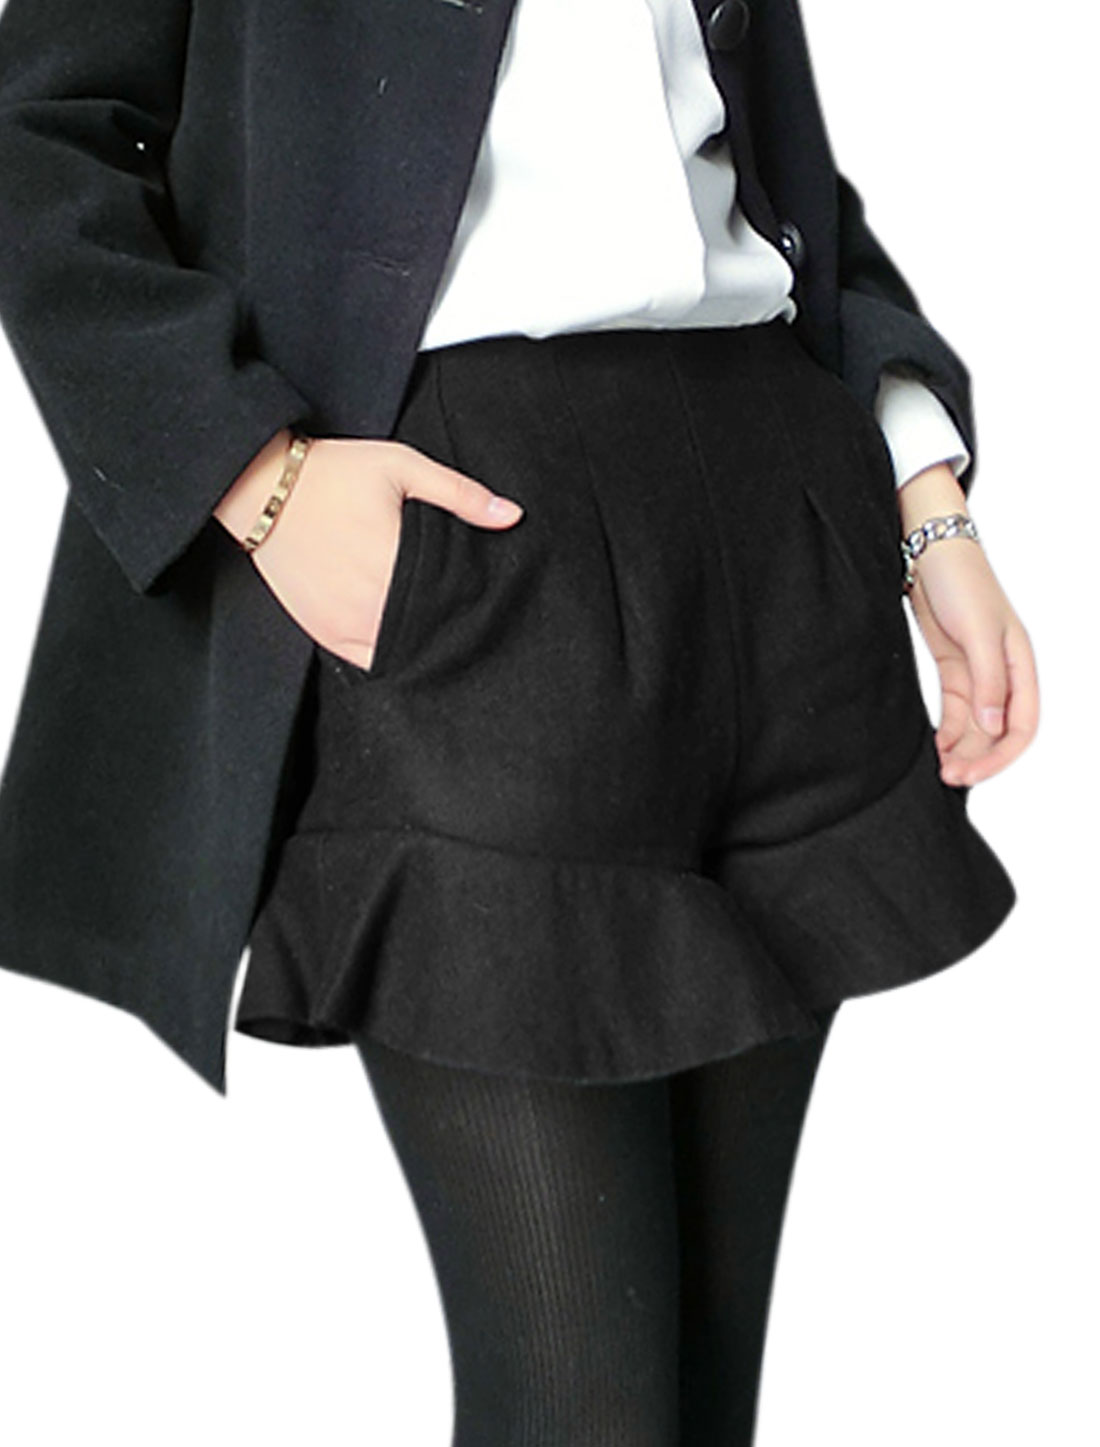 Lady High Waist Zip Up Side Flouncing Hem Worsted Shorts Black S